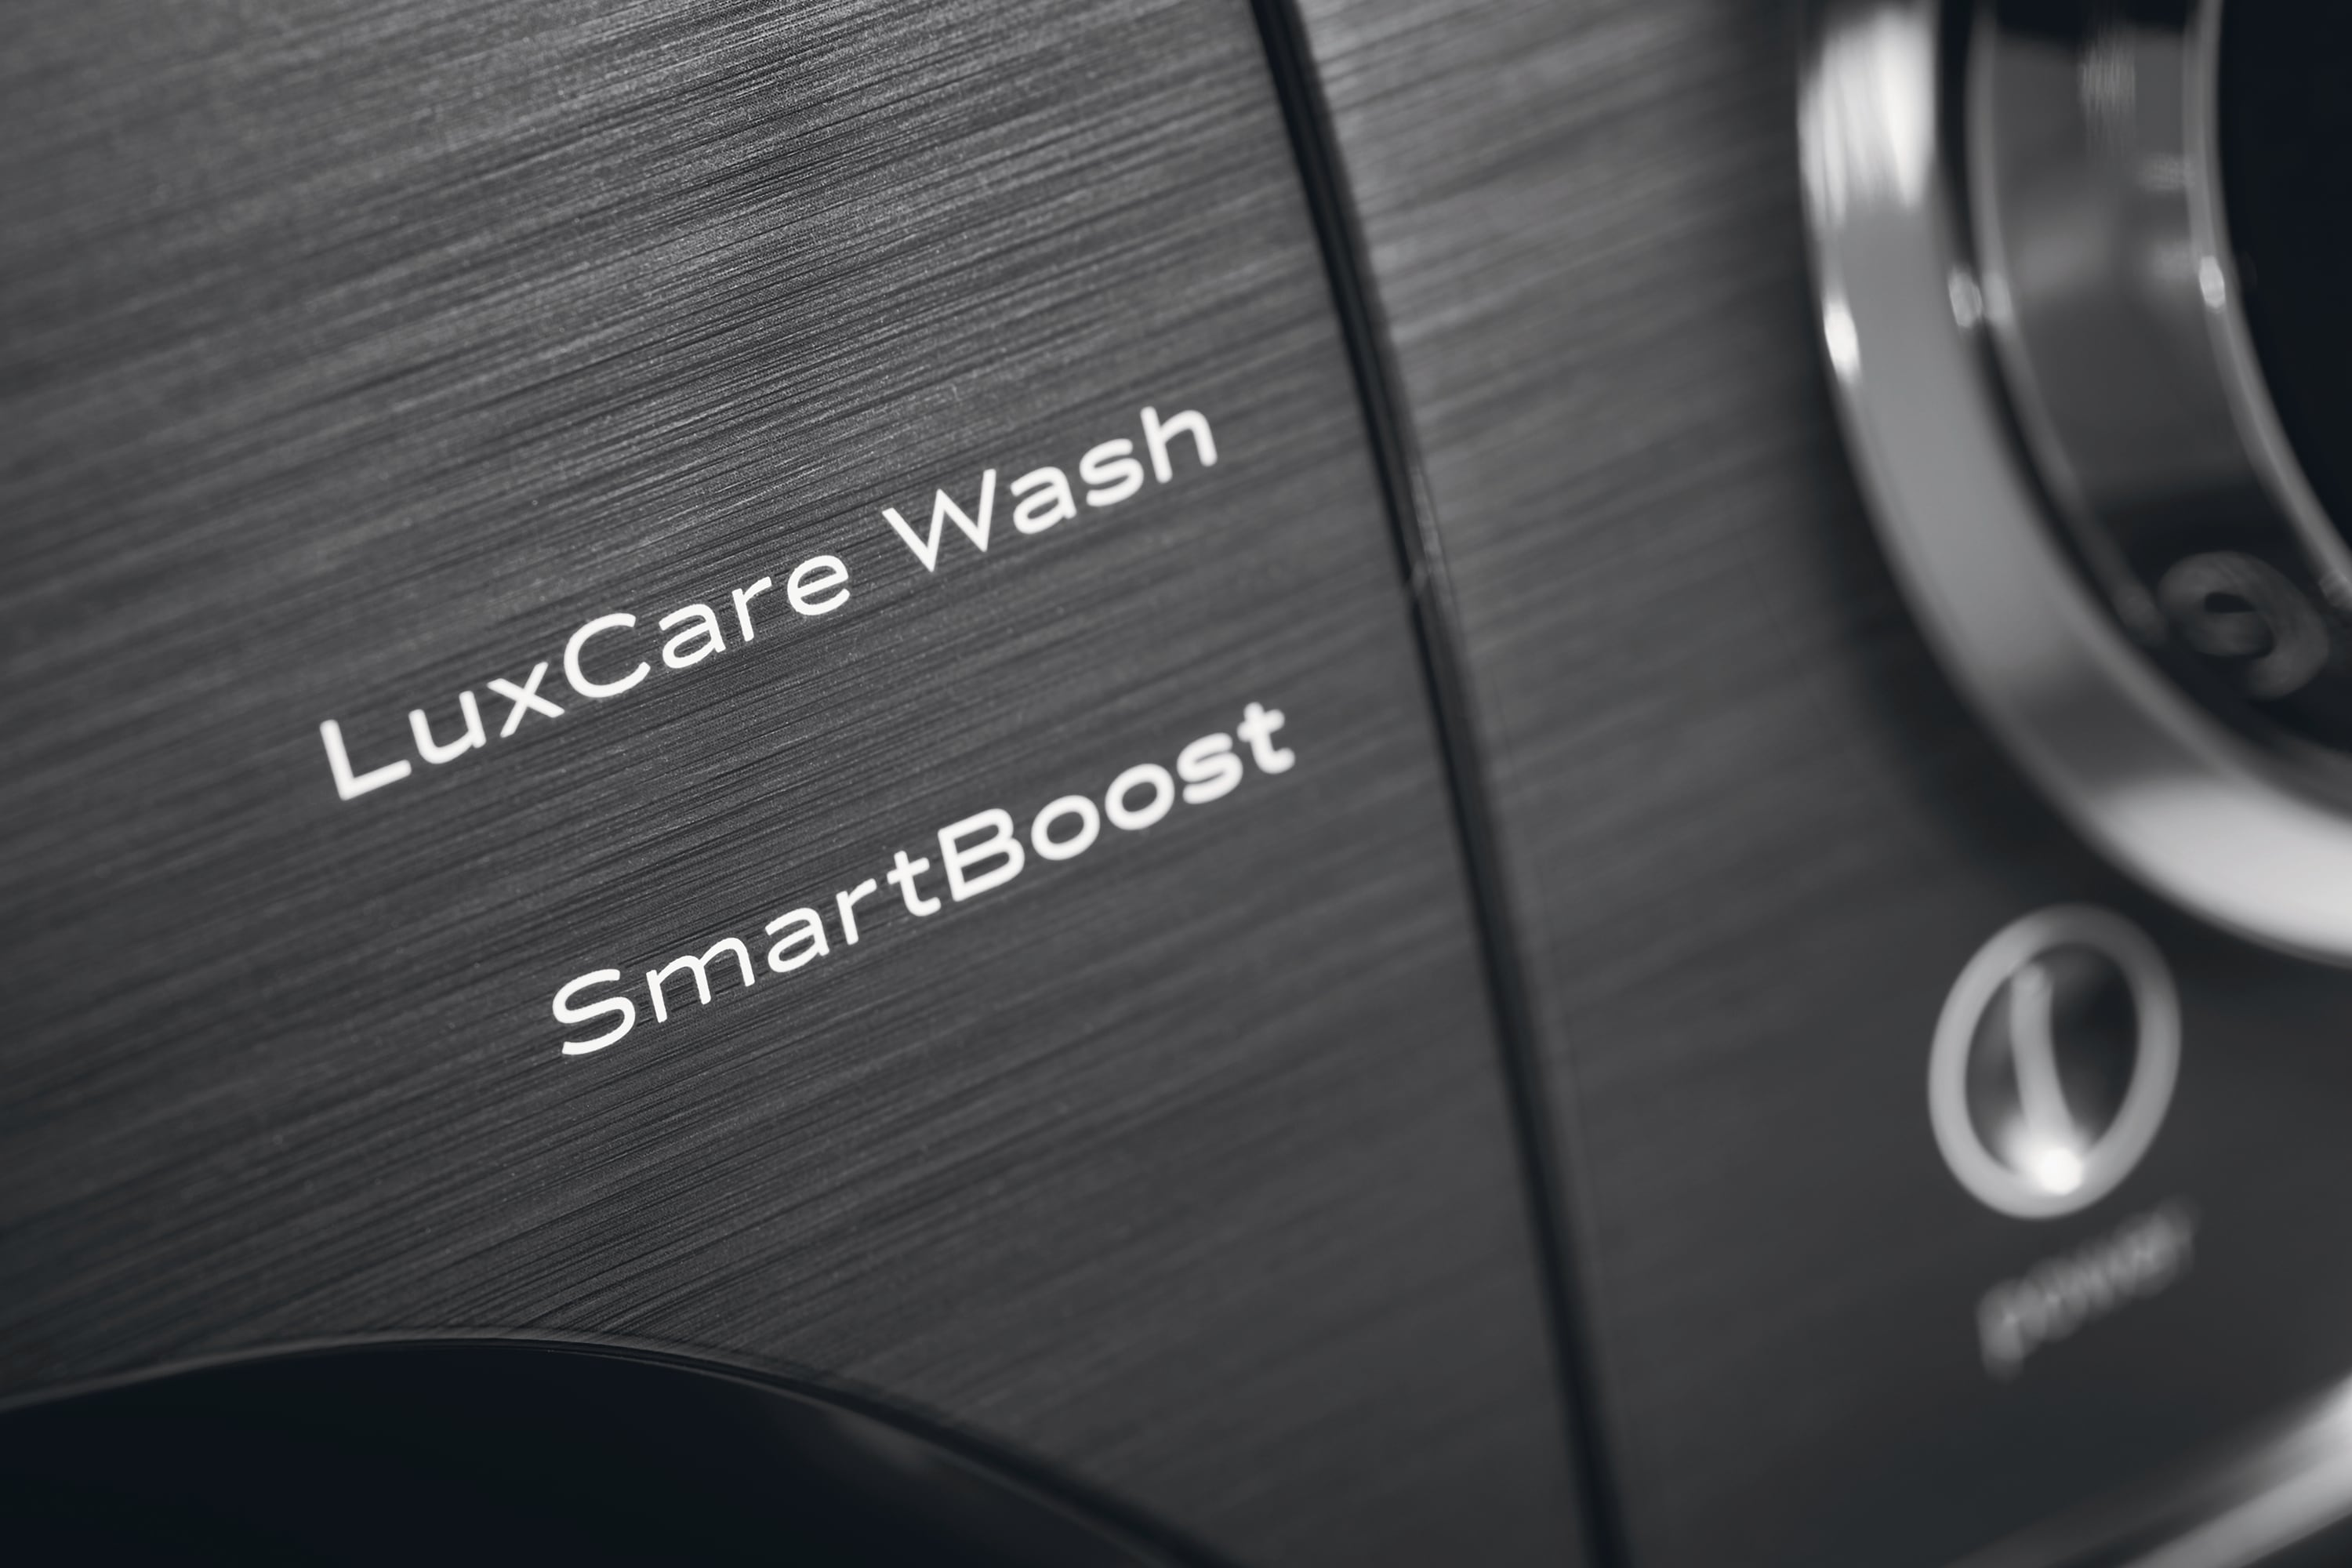 Model: EFLS627UTT   Front Load Perfect Steam™ Washer with LuxCare® Wash and SmartBoost® - 4.4 Cu.Ft.